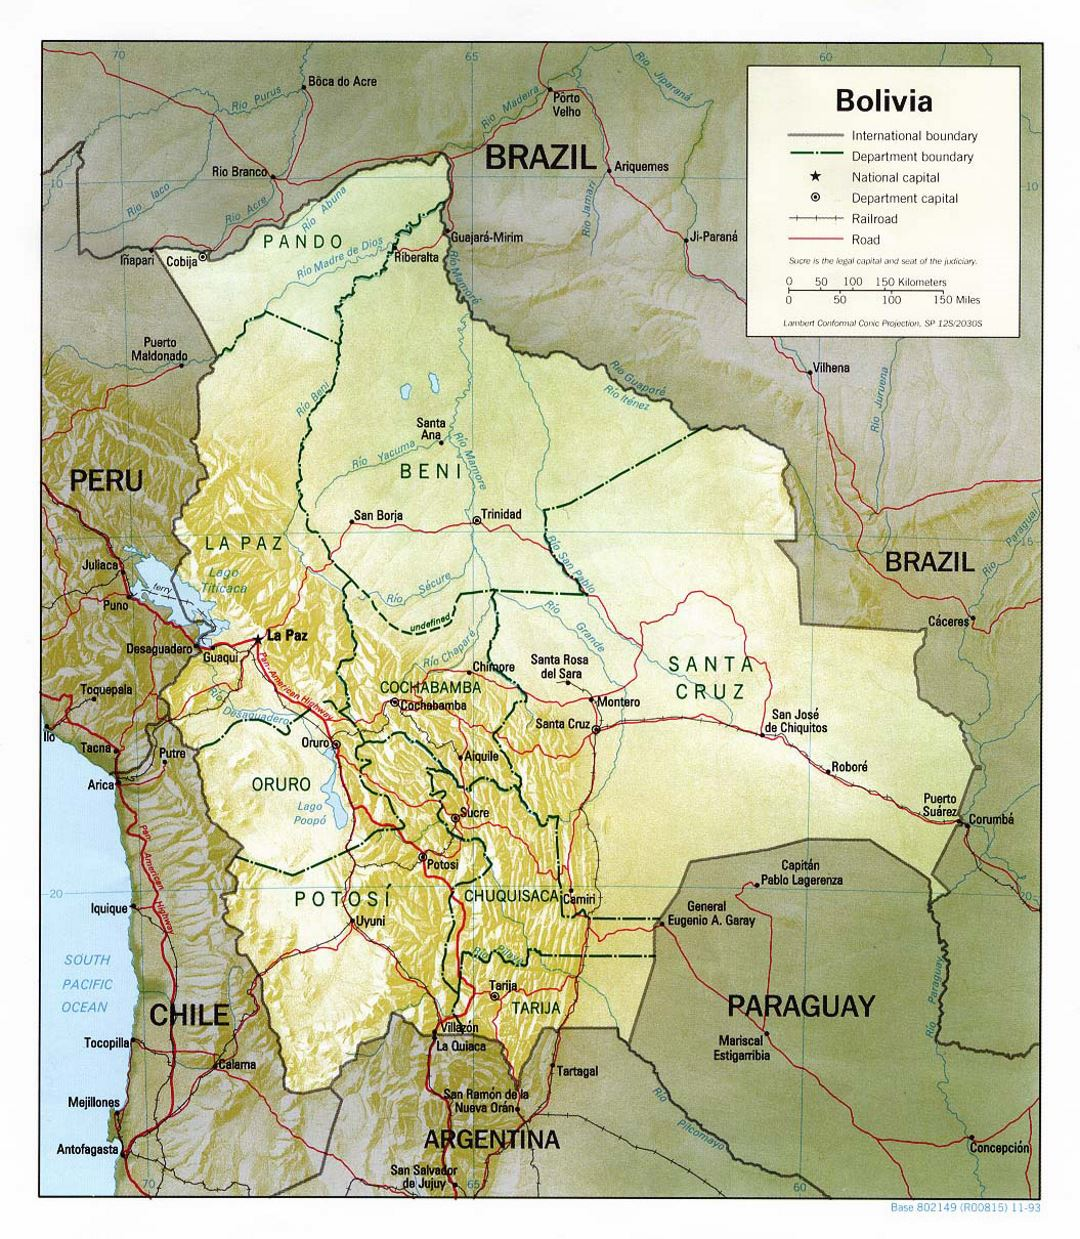 Detailed political and administrative map of Bolivia with relief, roads and major cities - 1993